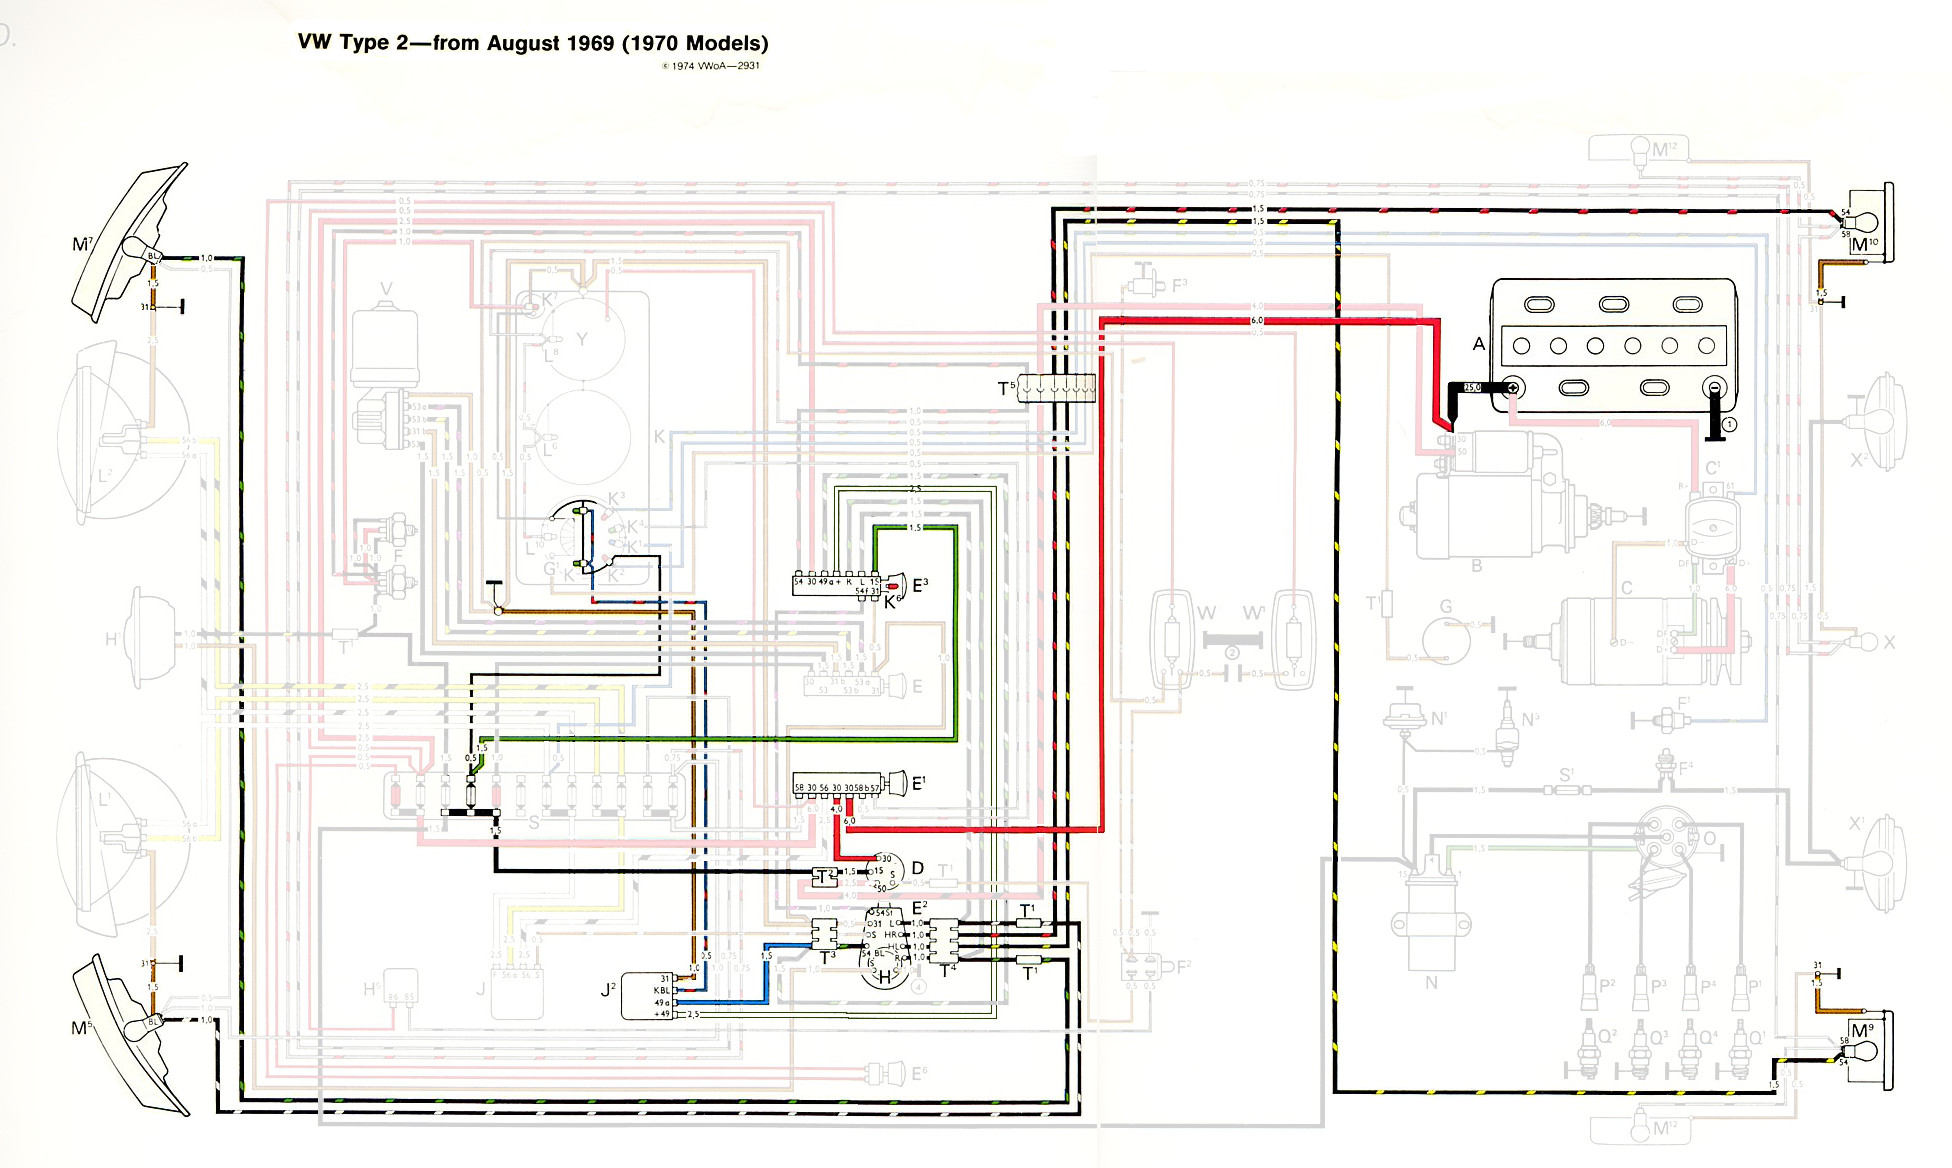 hight resolution of vw bus diagram wiring diagram insidevolkswagen type 2 wiring wiring diagram forward 71 vw bus wiring